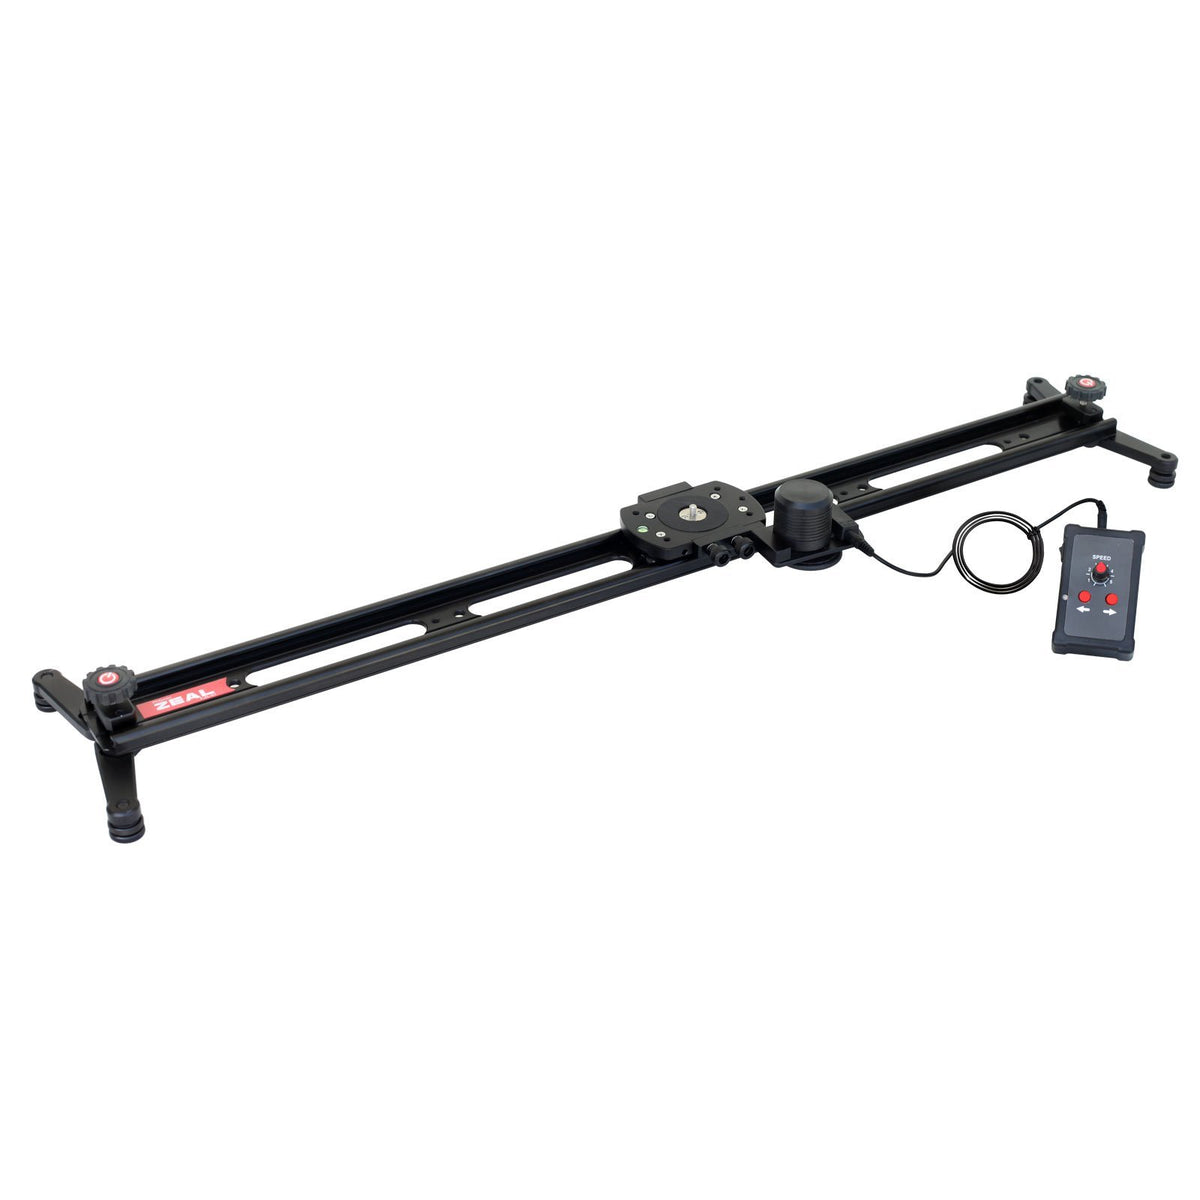 Proaim 3ft Zeal Video Camera Slider with Motion Control